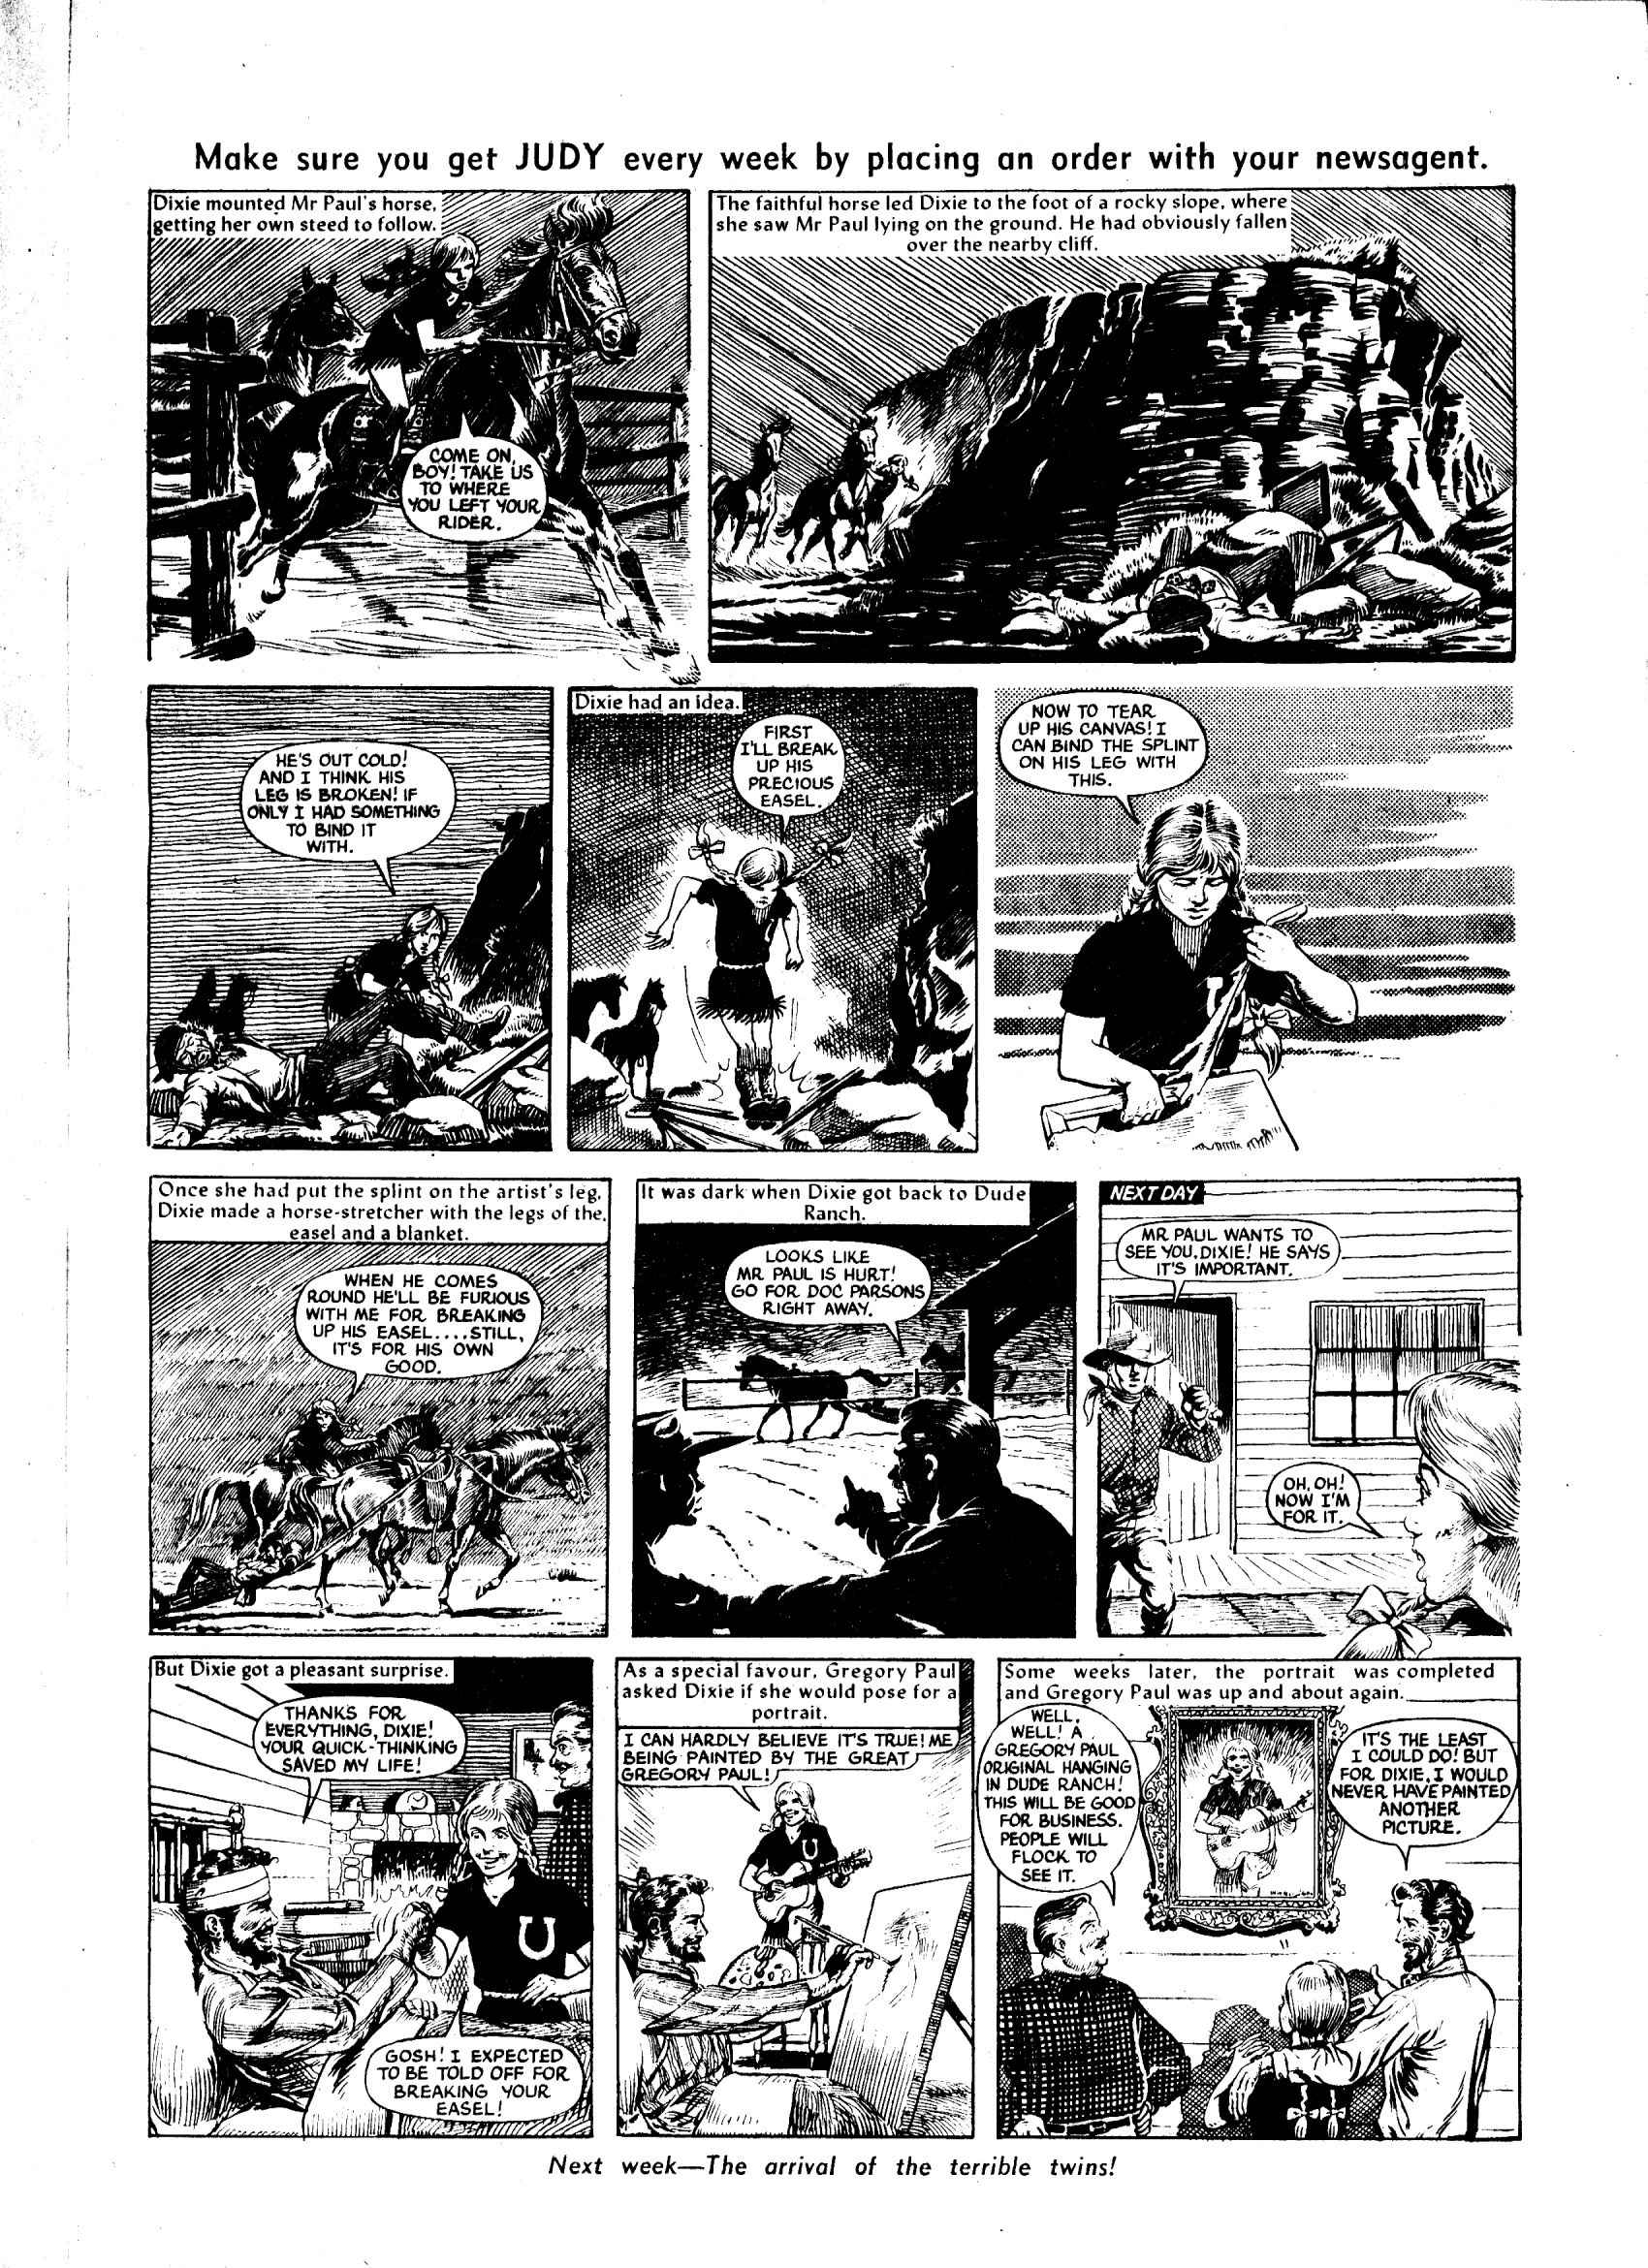 Read online Judy comic -  Issue #42 - 15